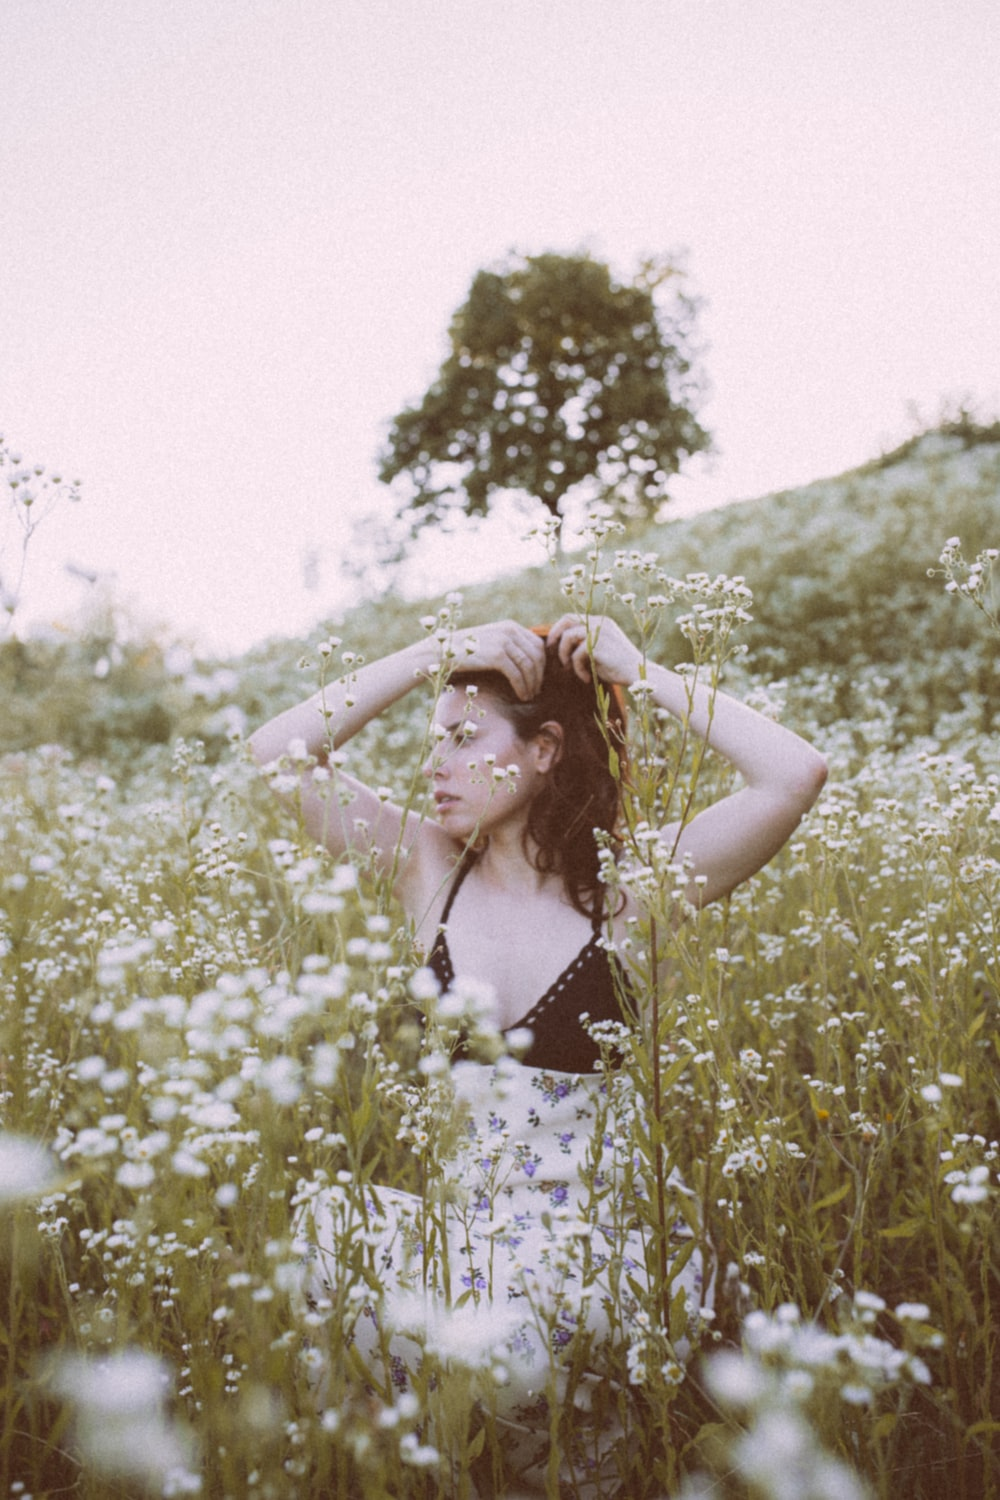 woman in blue and white floral spaghetti strap top standing on green grass field during daytime